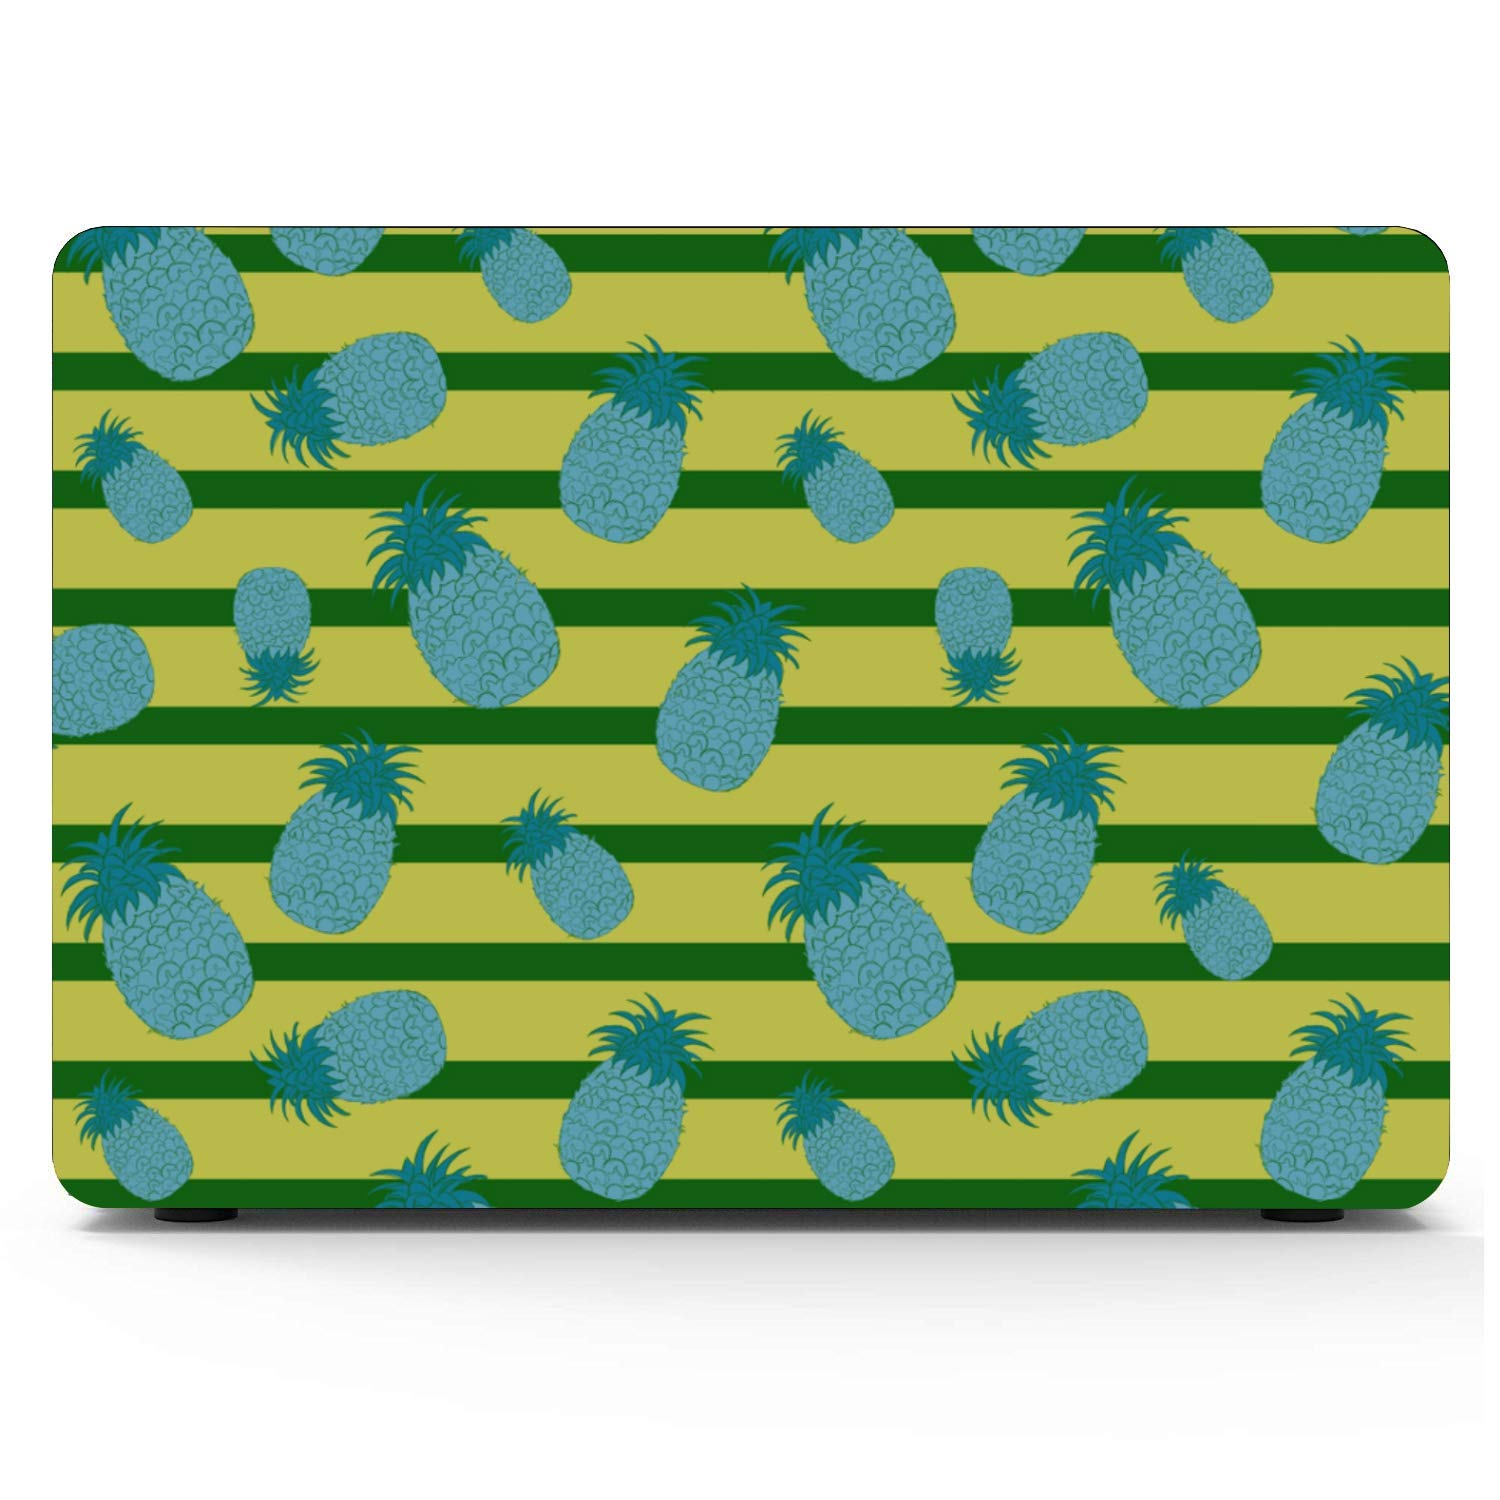 MacBook Pro Laptop Summer Fashion Sour Fruit Pineapple Plastic Hard Shell Compatible Mac Air 11 Pro 13 15 15 Inch Laptop Cover Protection for MacBook 2016-2019 Version